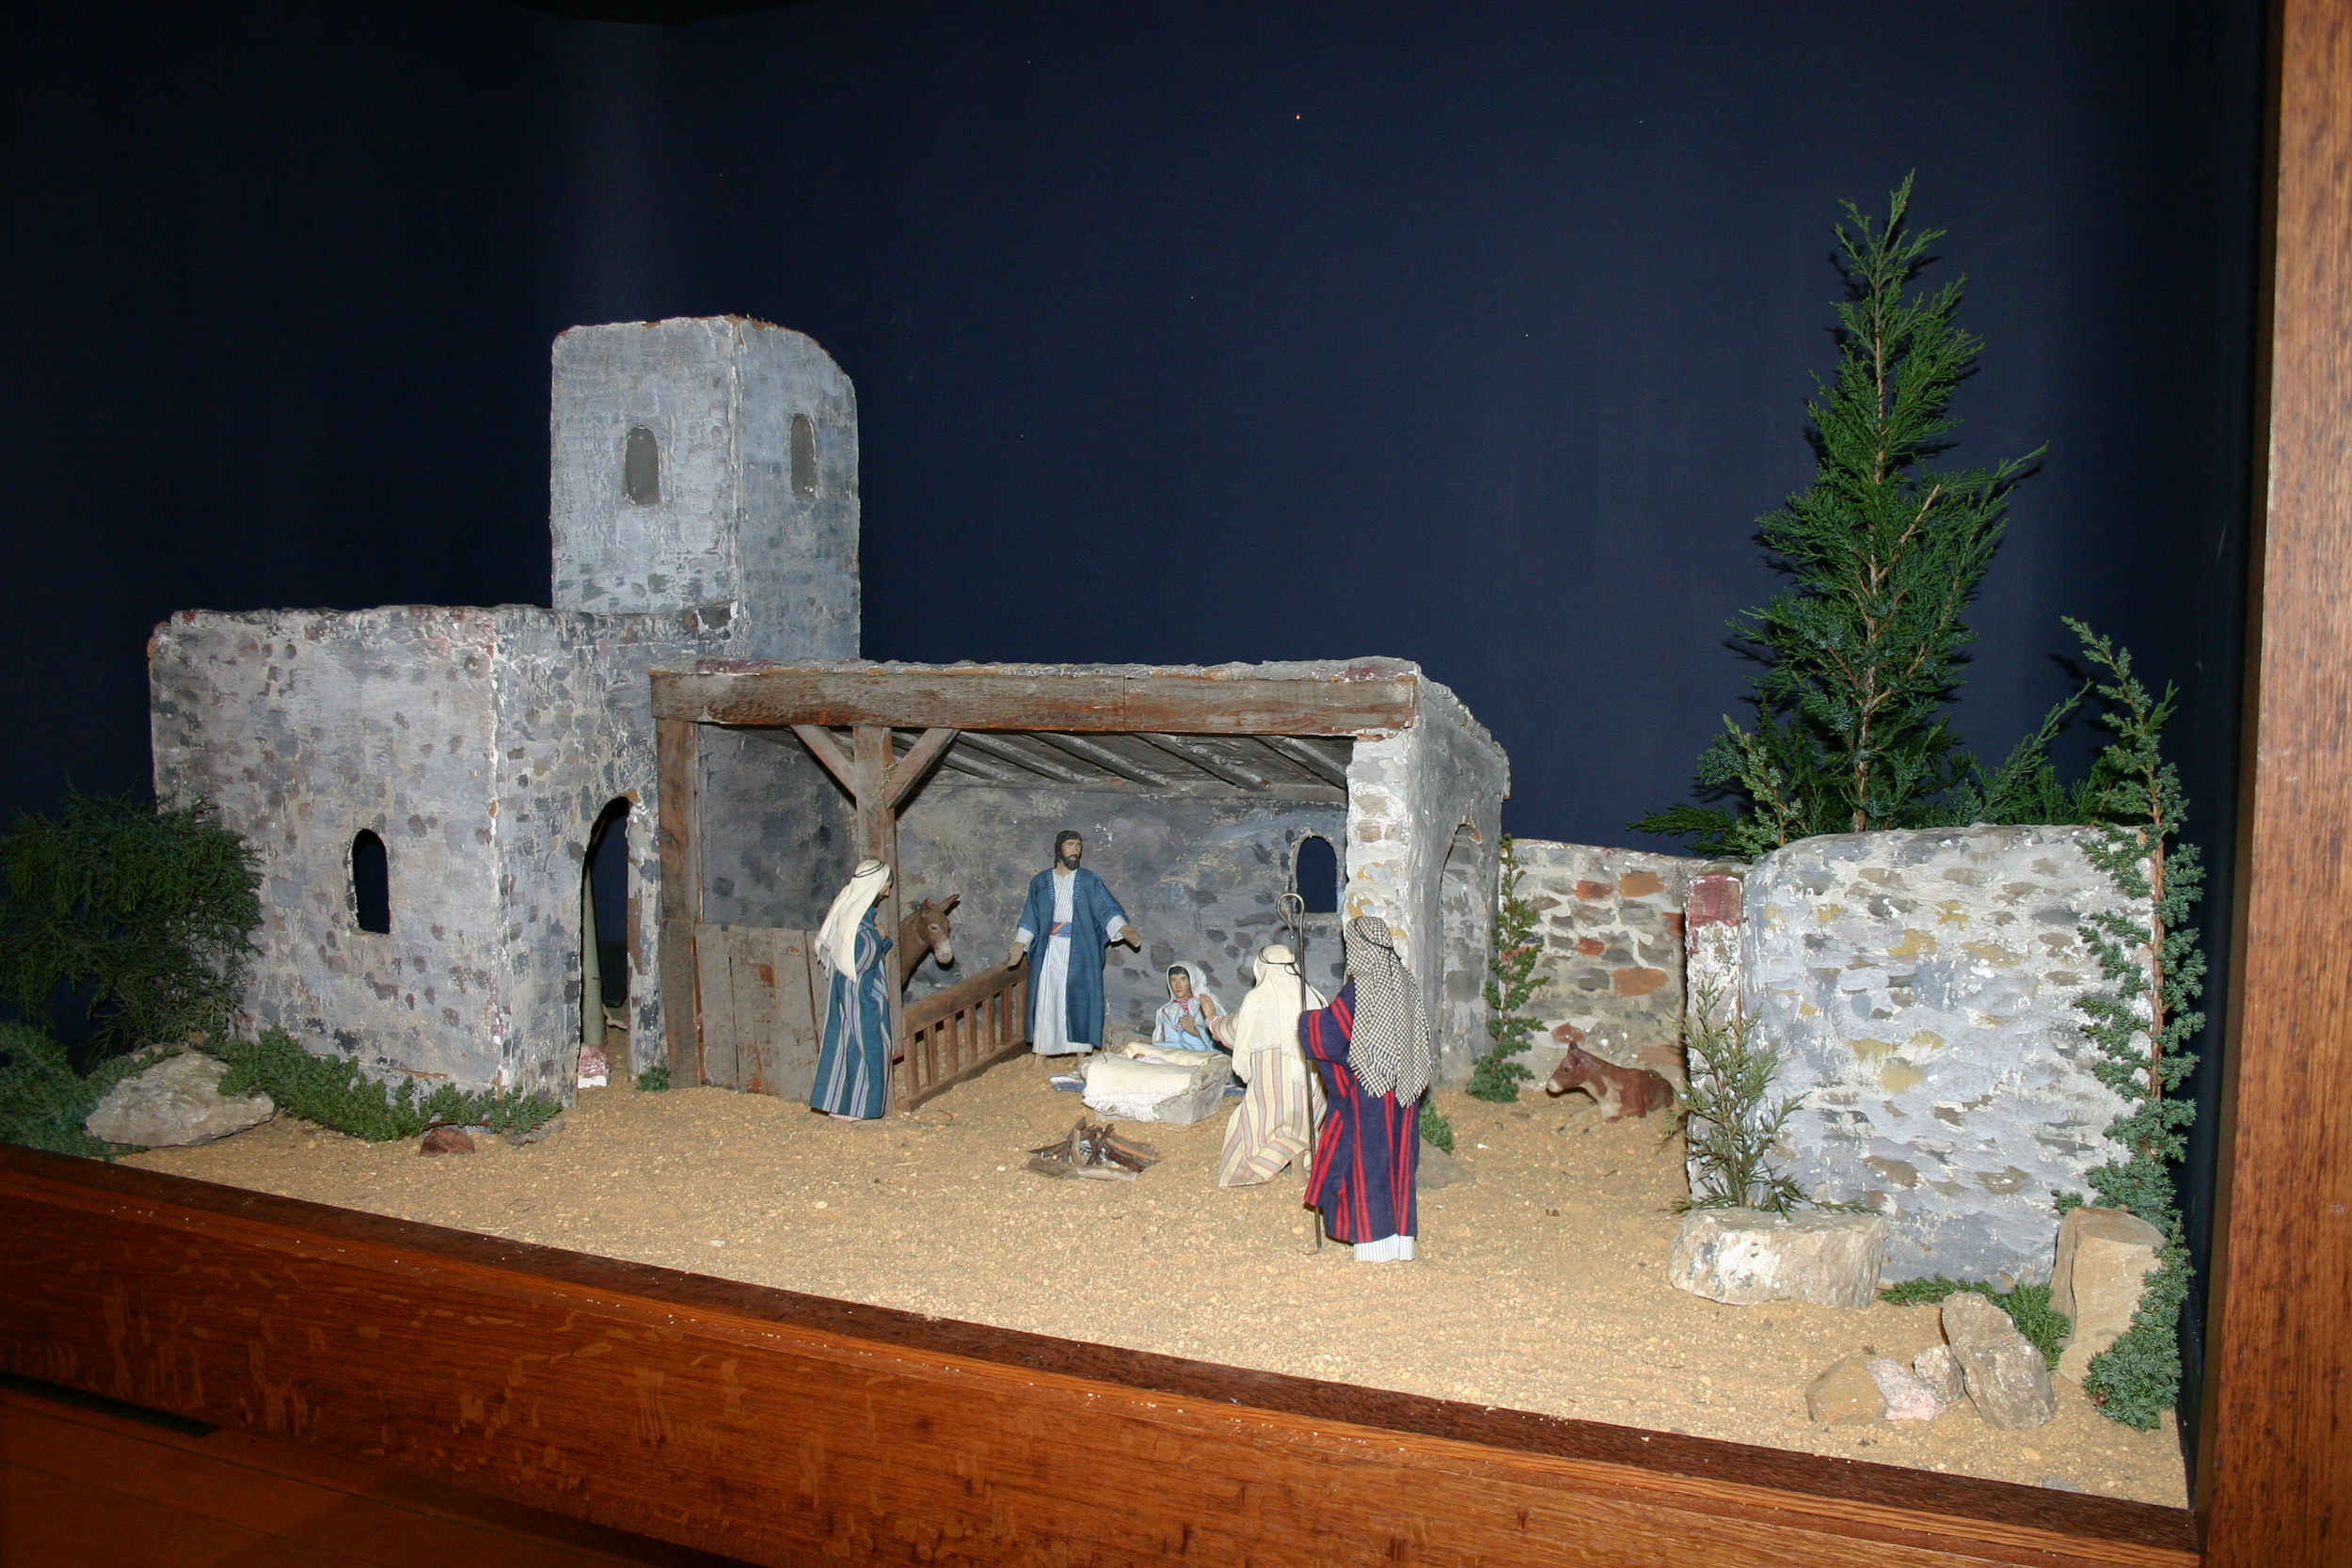 """Bryn Athyn Cathedral has three Nativity scenes made by Winfred S. Hyatt, very similar in appearance to the ones he made for the Pitcairn family. It is not known exactly when the scenes were made, but they were in use by 1929. After the Christmas Eve service in 1929, """"the whole congregation filed out to the Choir Hall, where were three beautiful representations, modeled by Mr. Winfred Hyatt..."""" (New Church Life 1930, 189). Bryn Athyn Cathedral's Nativity is still displayed each year at Christmas time in the choir hall. Photo courtesy of Bryn Athyn Cathedral."""